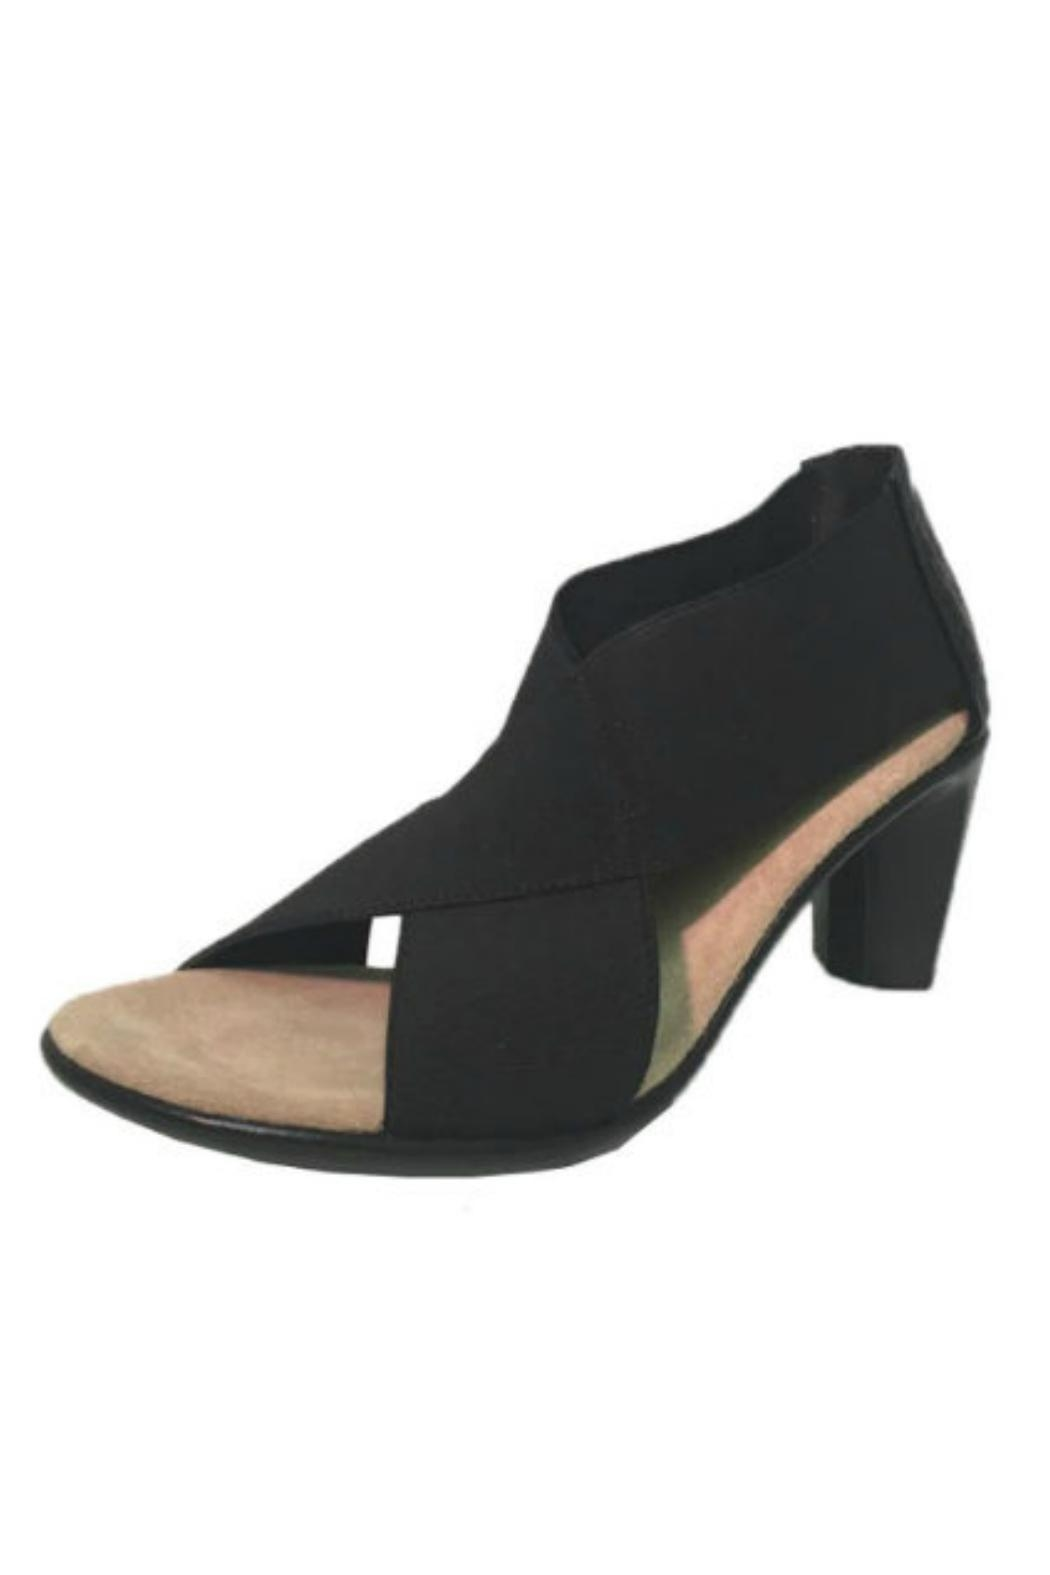 CHARLESTON Crawford Cross Heel - Main Image